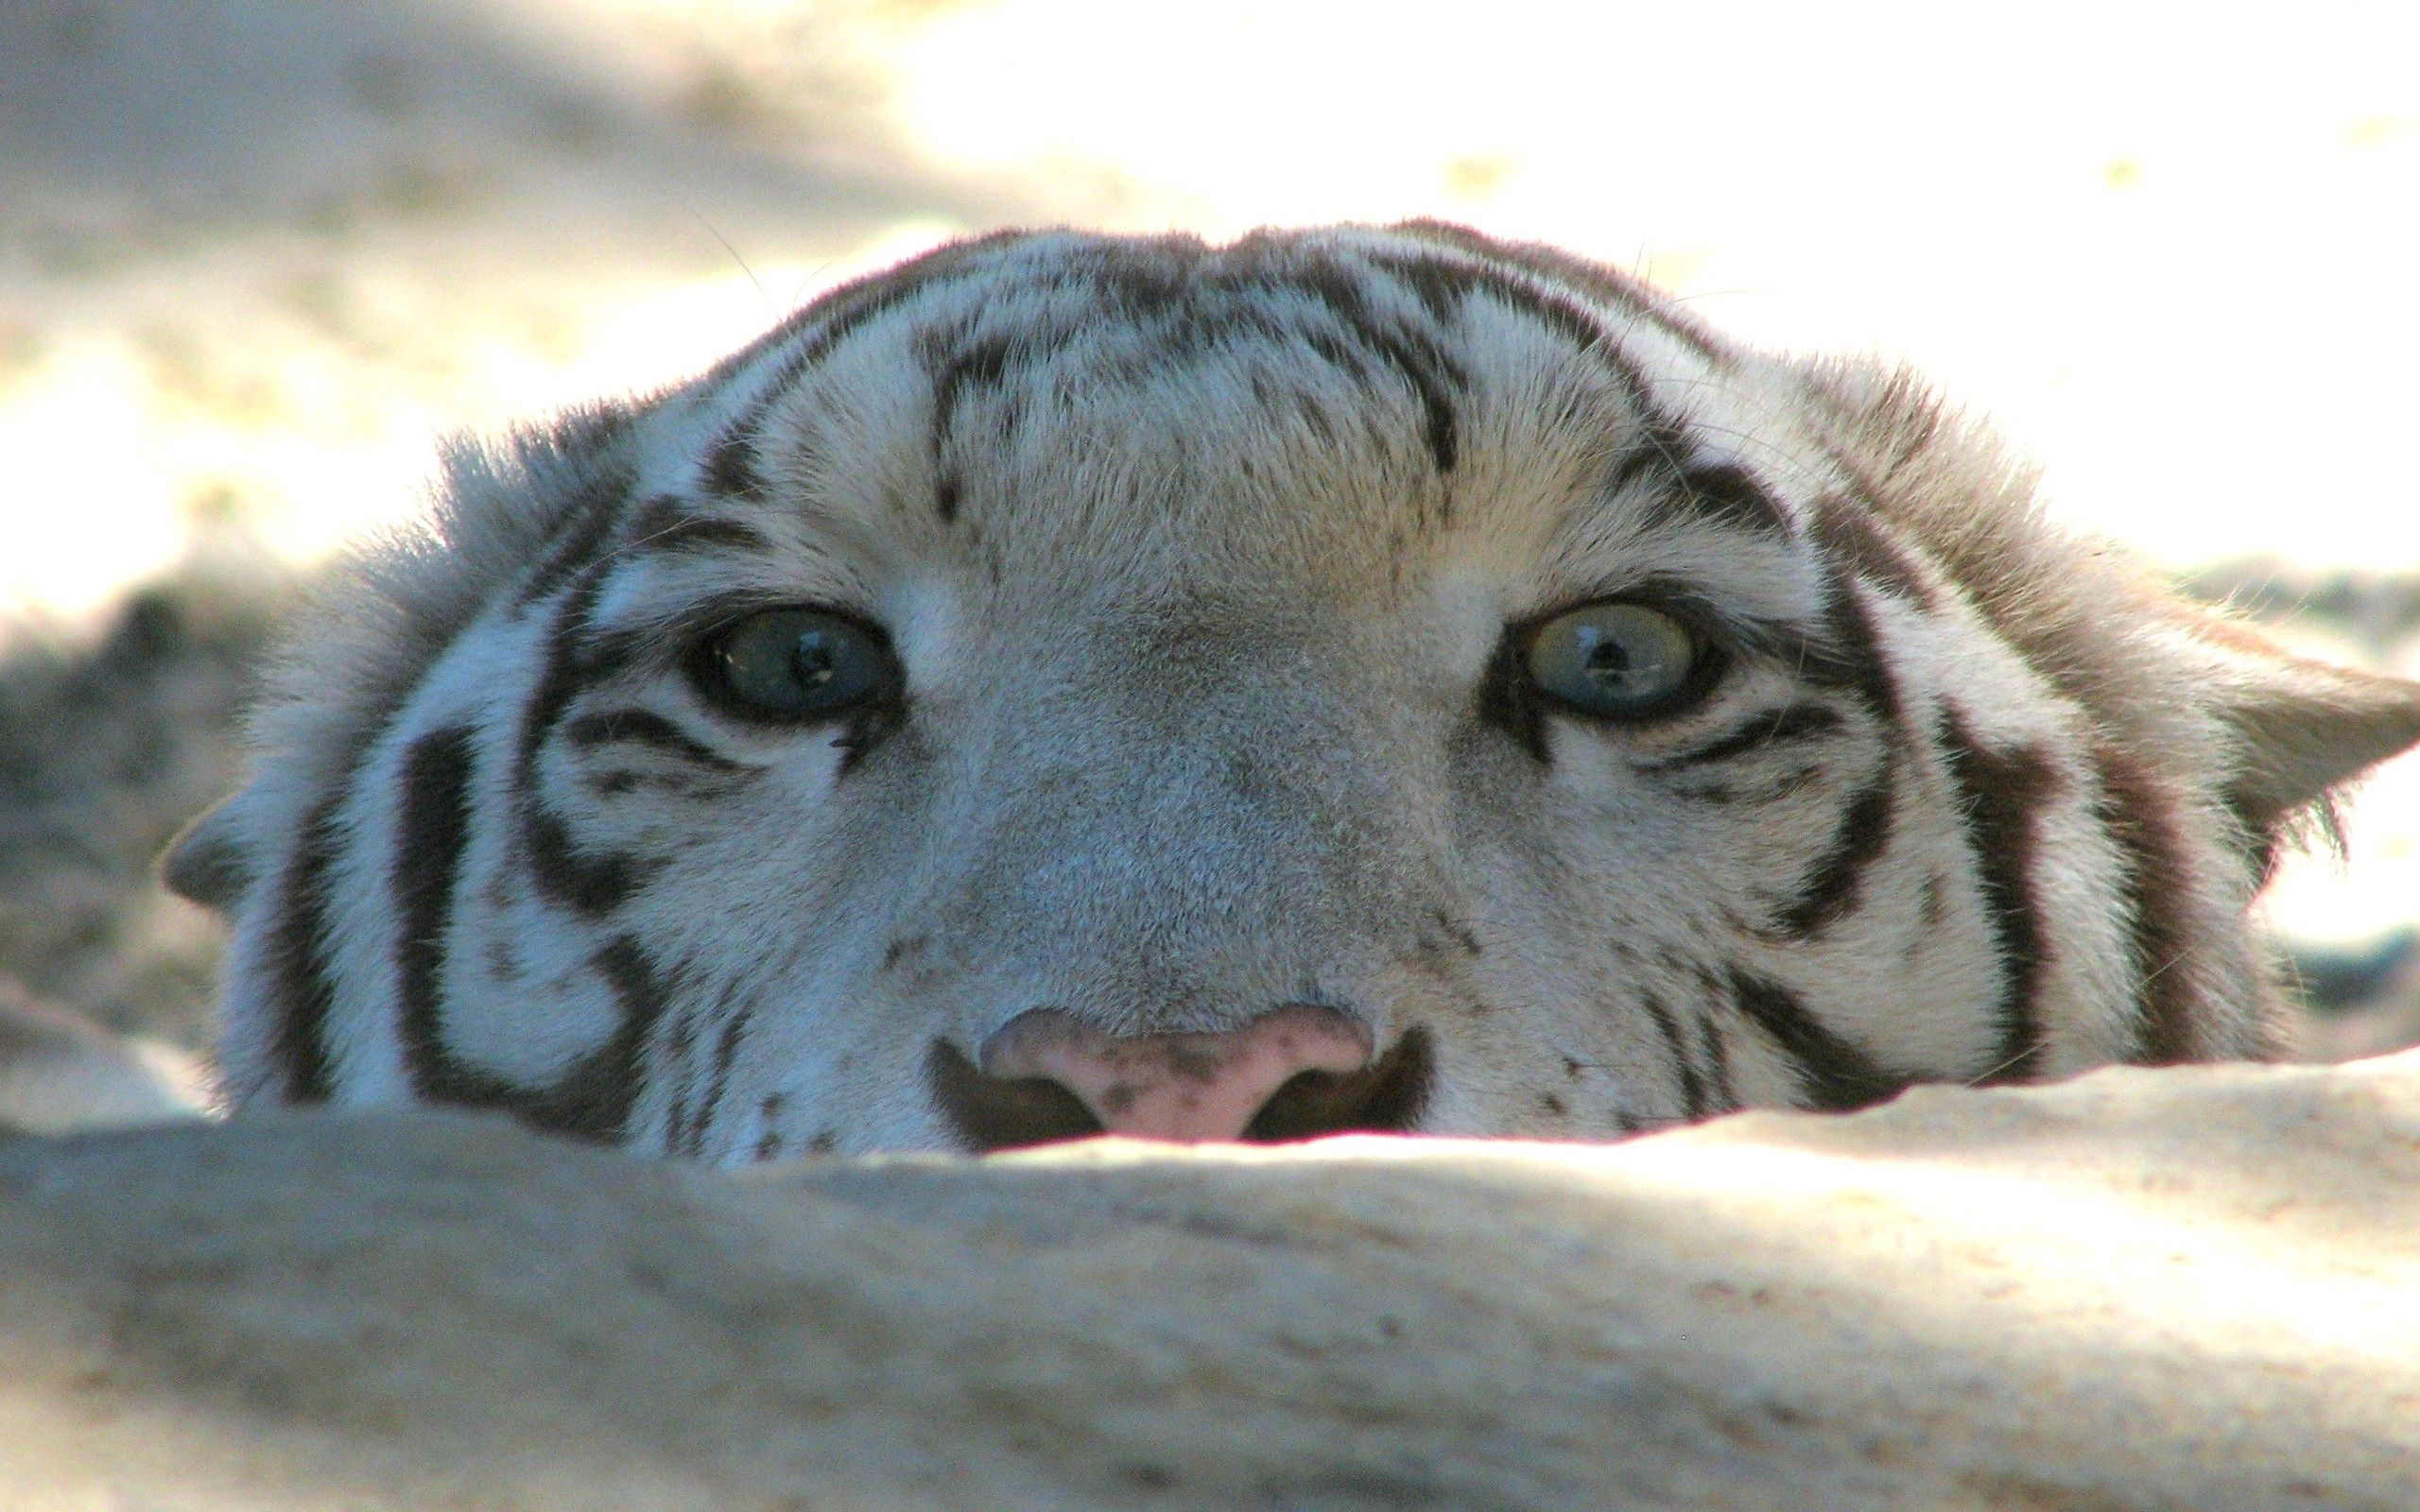 134968 download wallpaper Animals, Tiger, Muzzle, Rock, Stone, Sight, Opinion, Predator screensavers and pictures for free